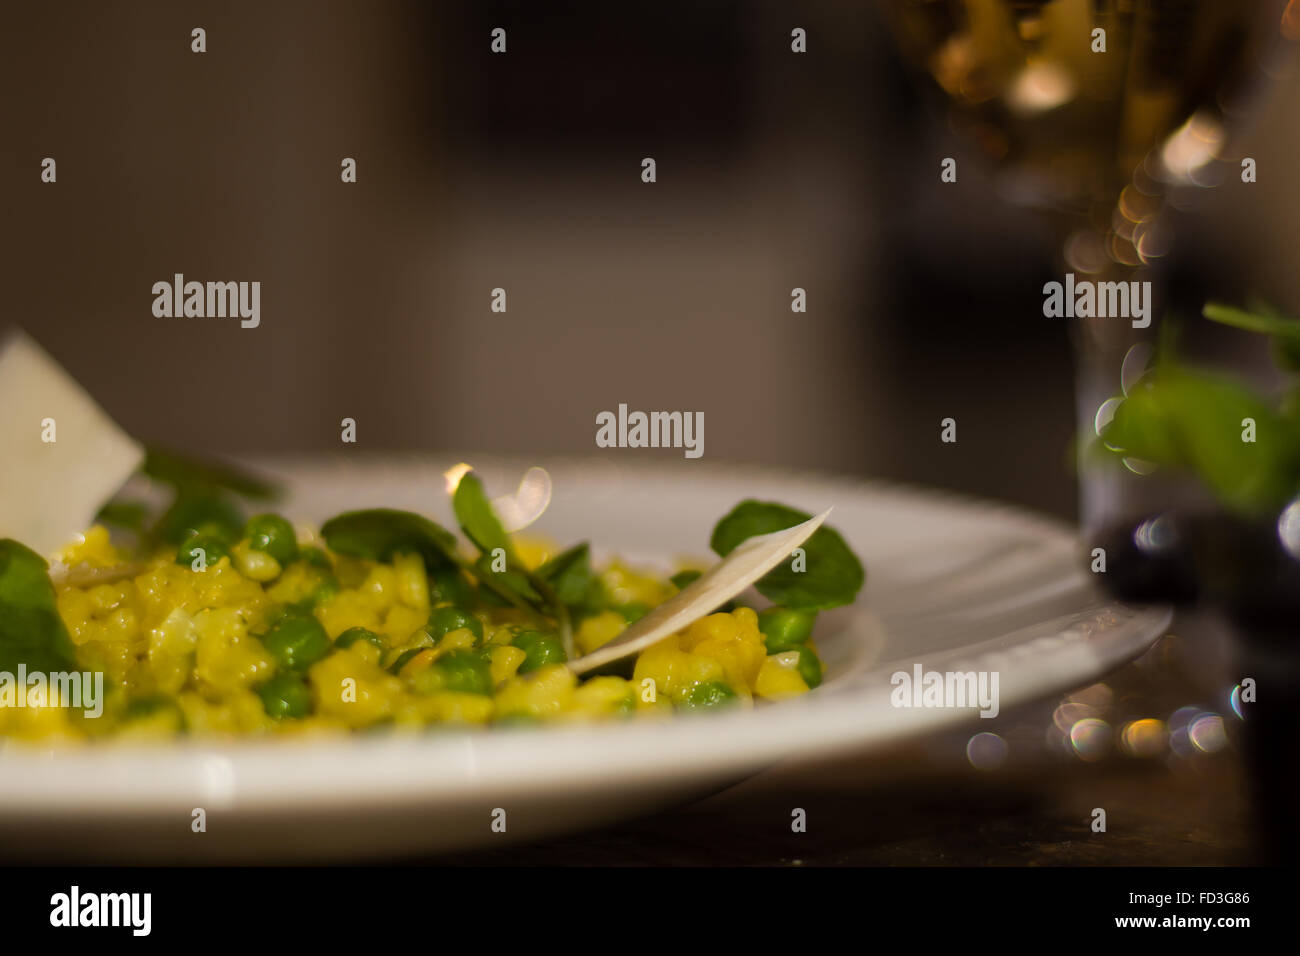 Leek, garden pea and saffron risotto half plate with wine. French restaurant prepared cuisine with bright yellow - Stock Image